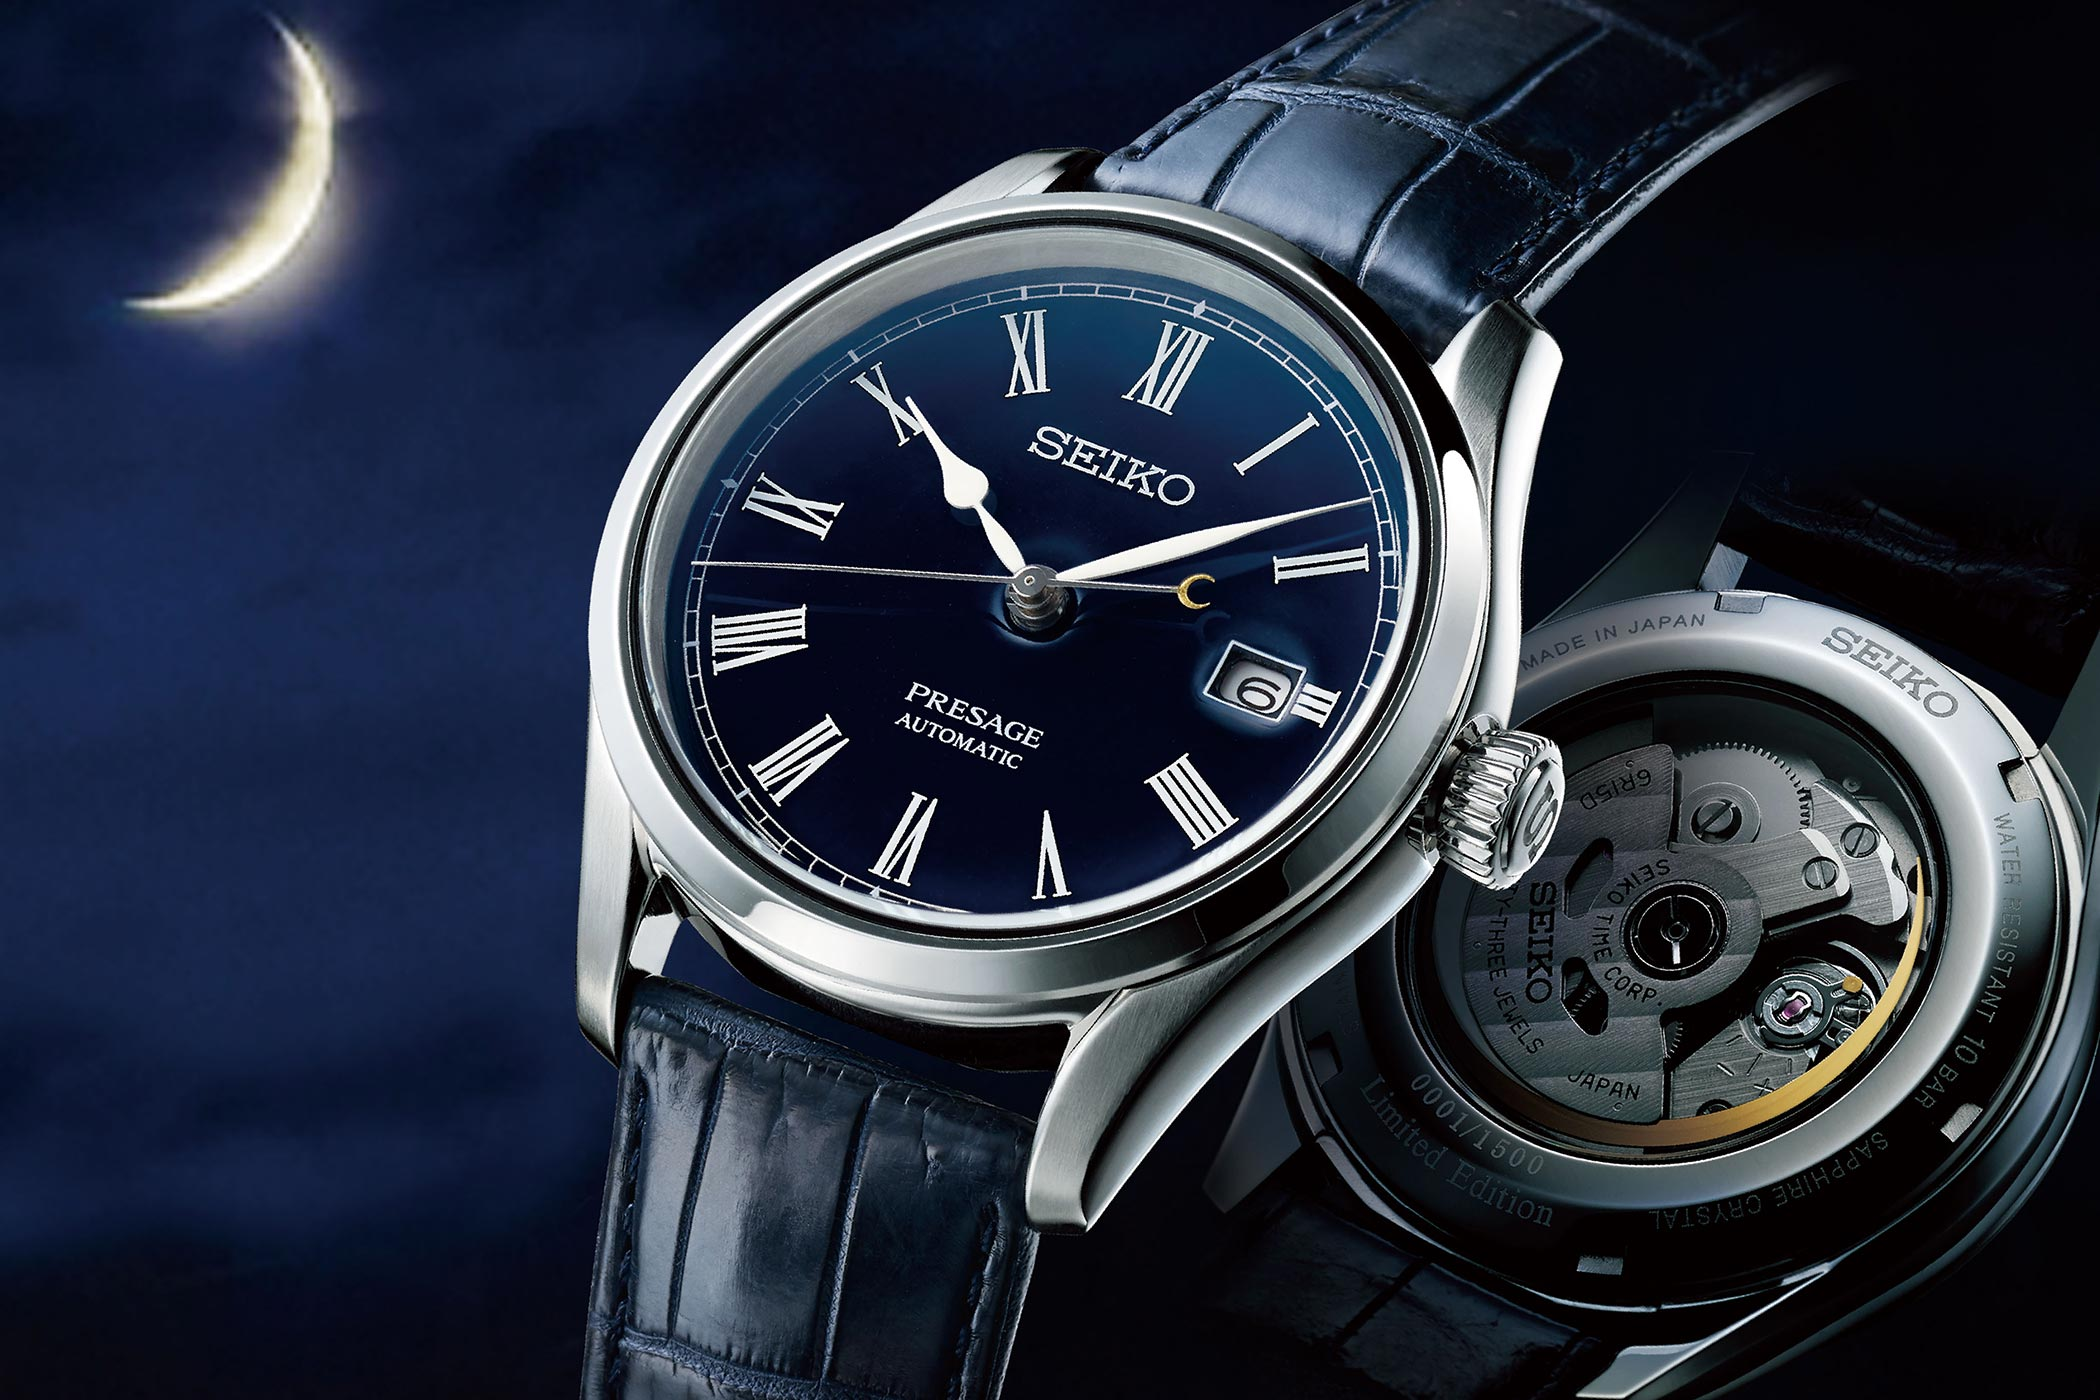 Your father would love the Seiko Presage timepiece – Here are a few reasons why